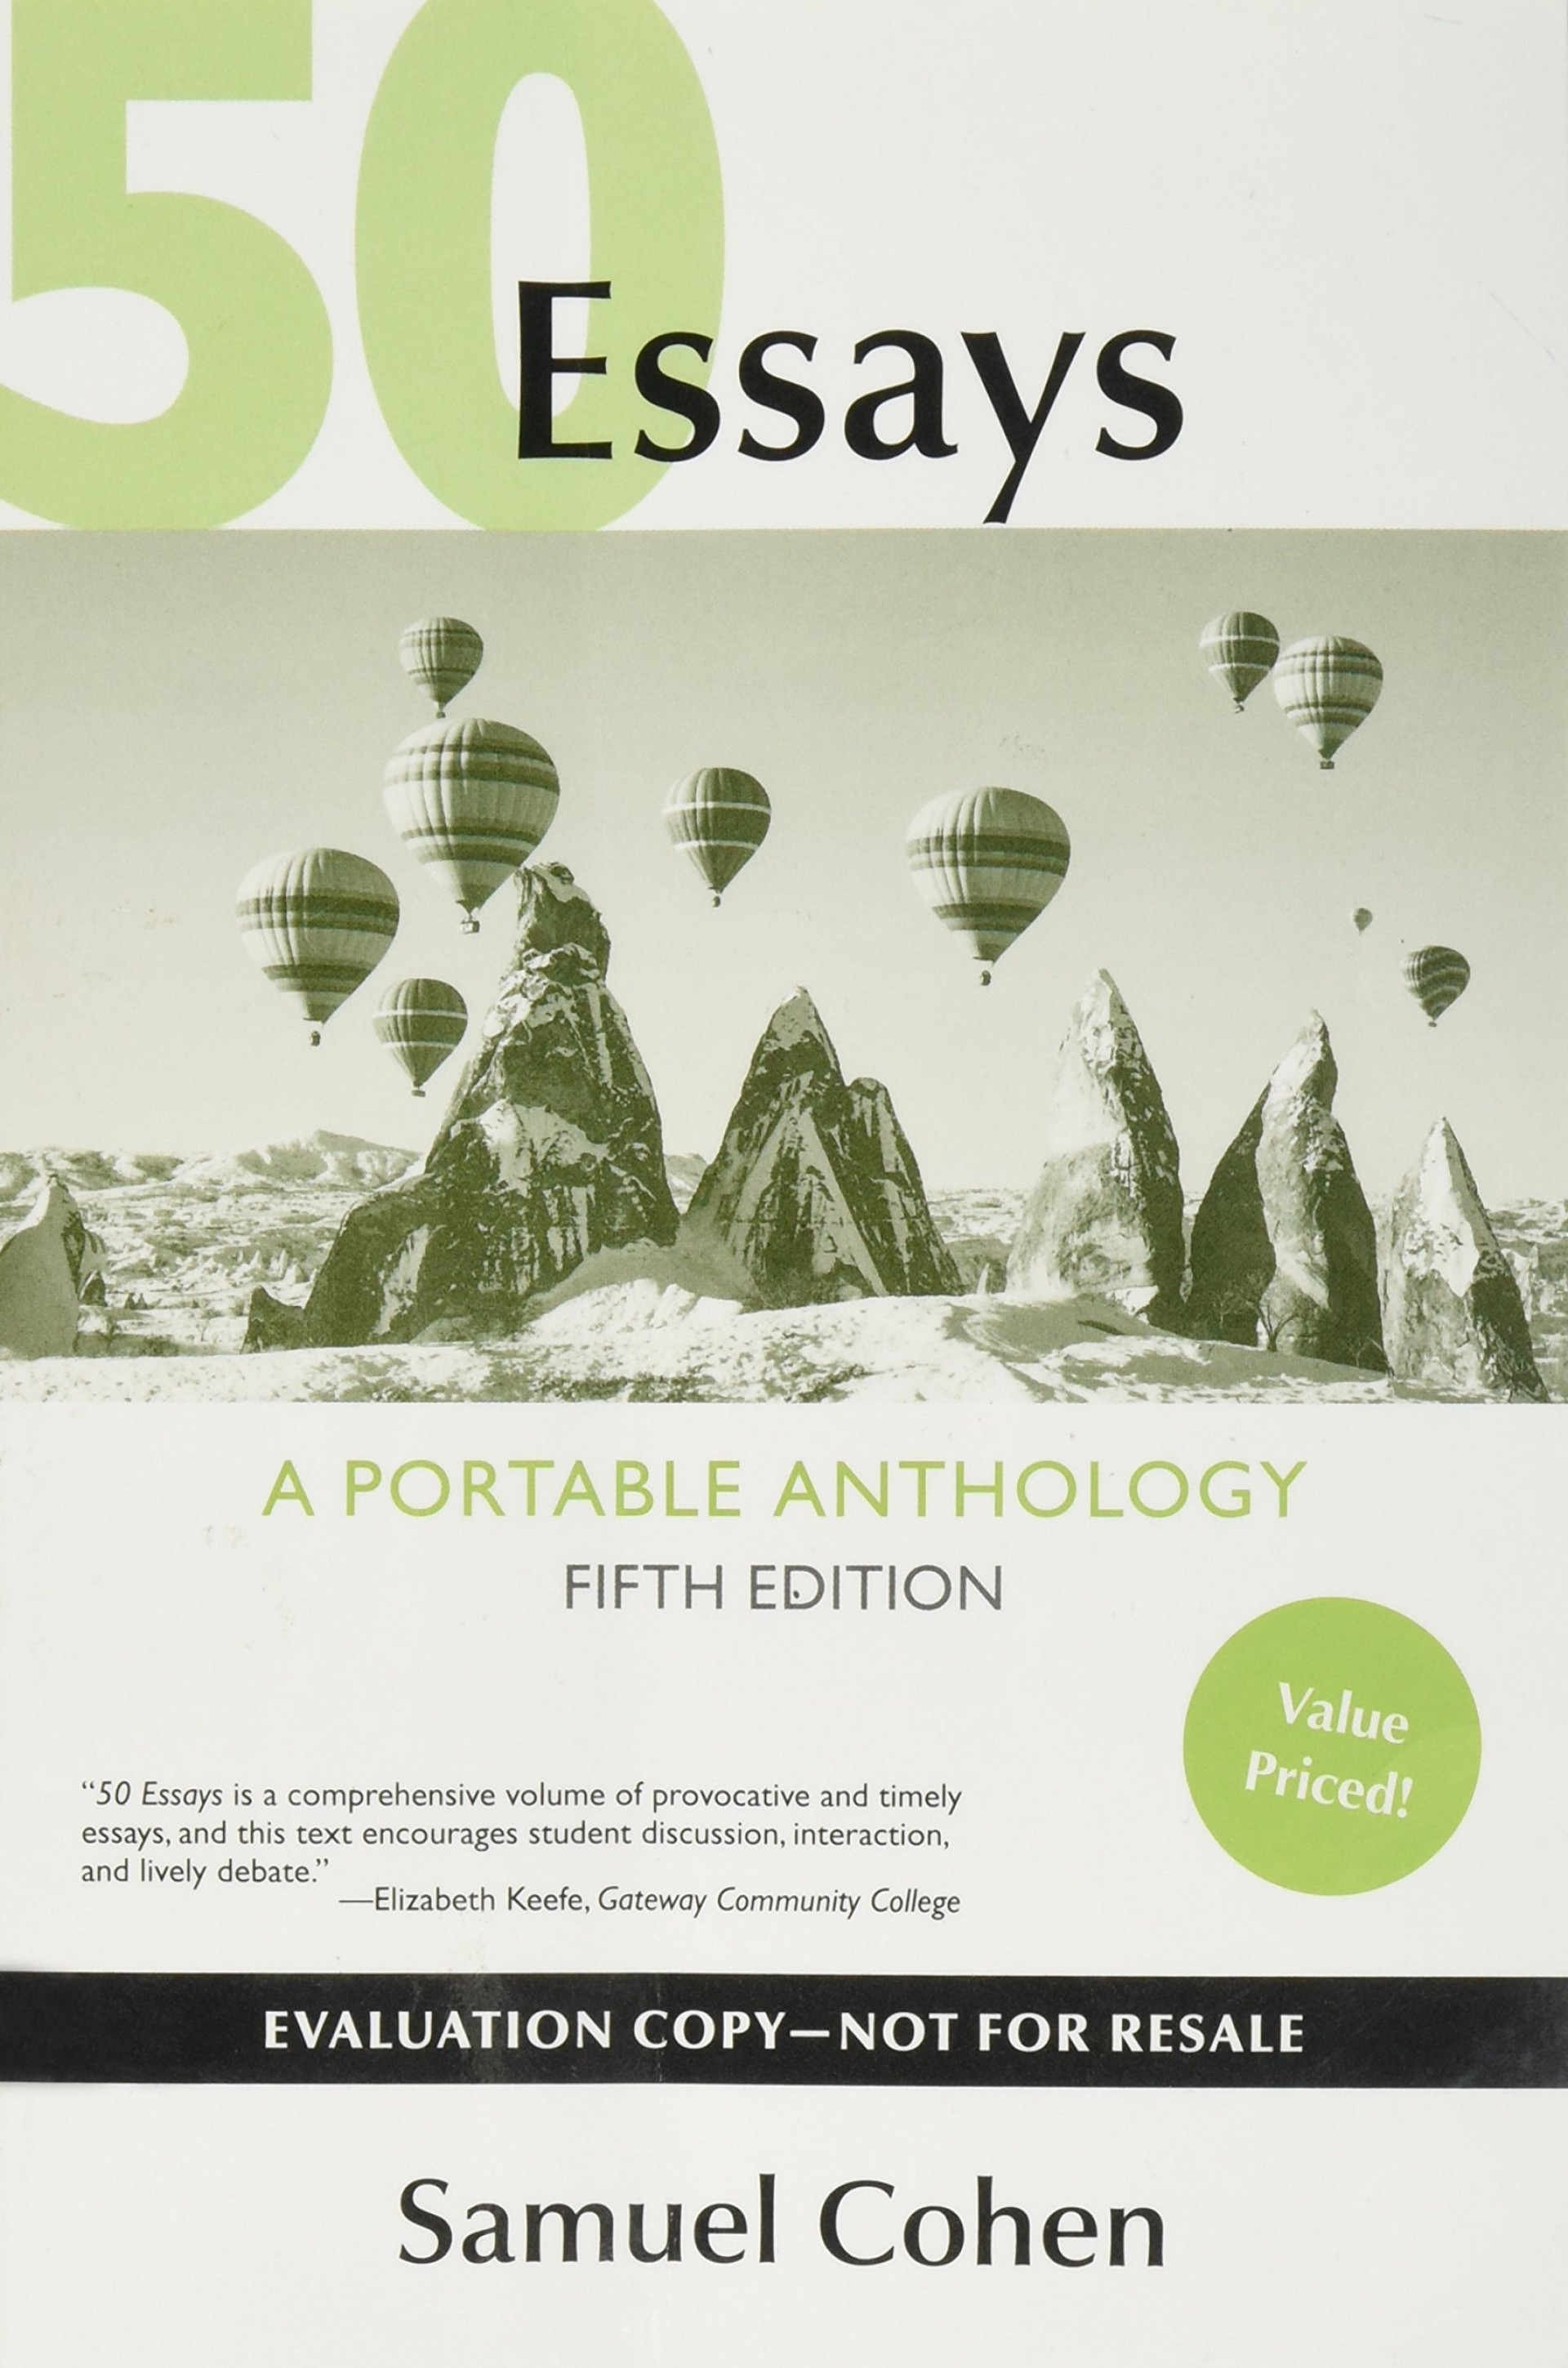 008 Essay Example 81lvlre8oll Essays 5th Imposing 50 Edition Fifty Great Pdf Free A Portable Anthology Ebook 1920